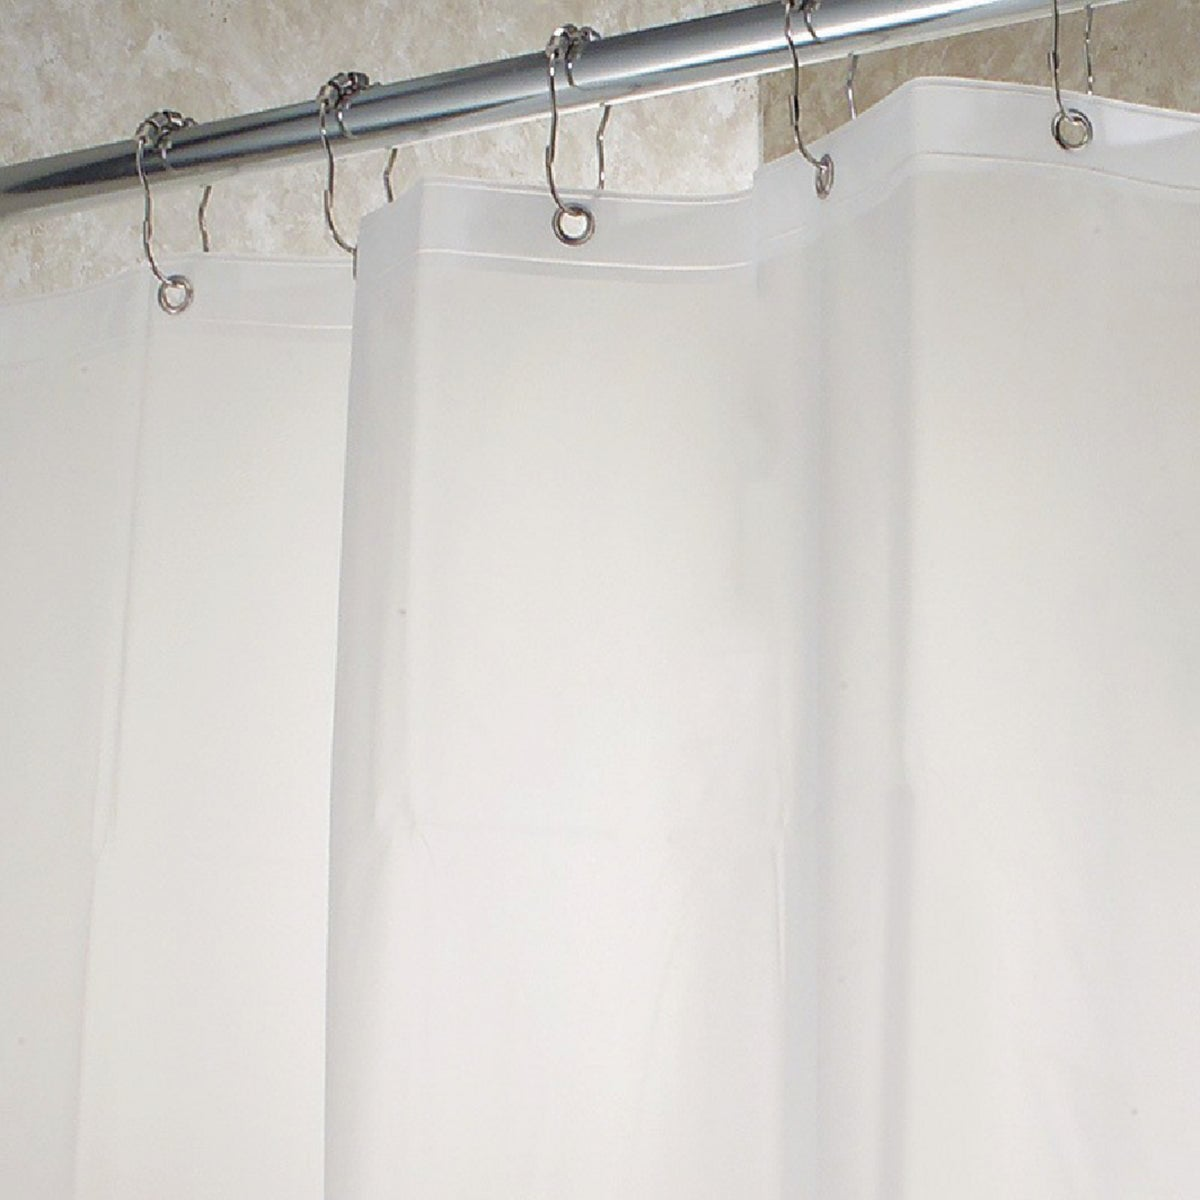 VINYL SHOWER CURTAIN - 14551 by Interdesign Inc